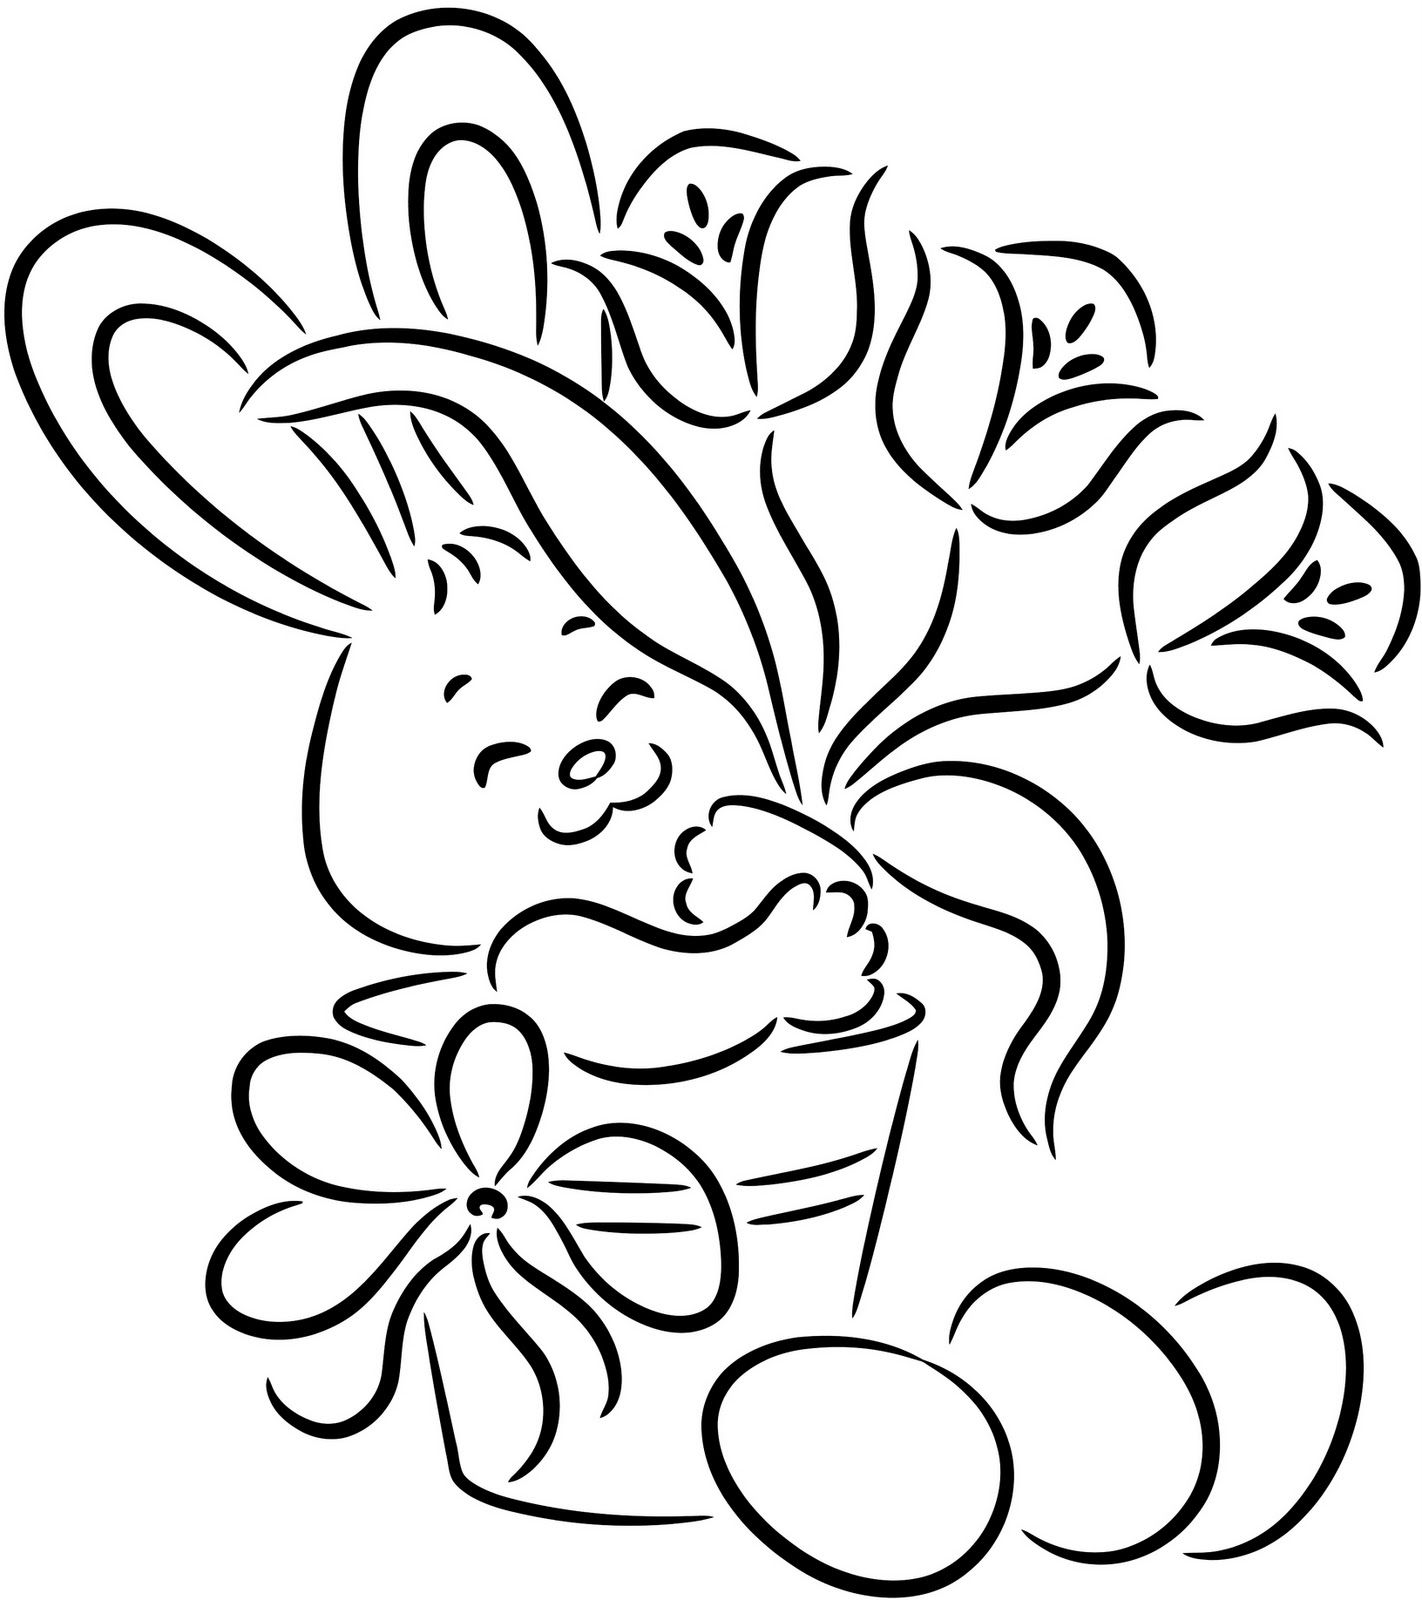 Free easter coloring pages for toddlers - Fun Free Mermaid Games Easter Bunny Coloring Pages Stock Videos